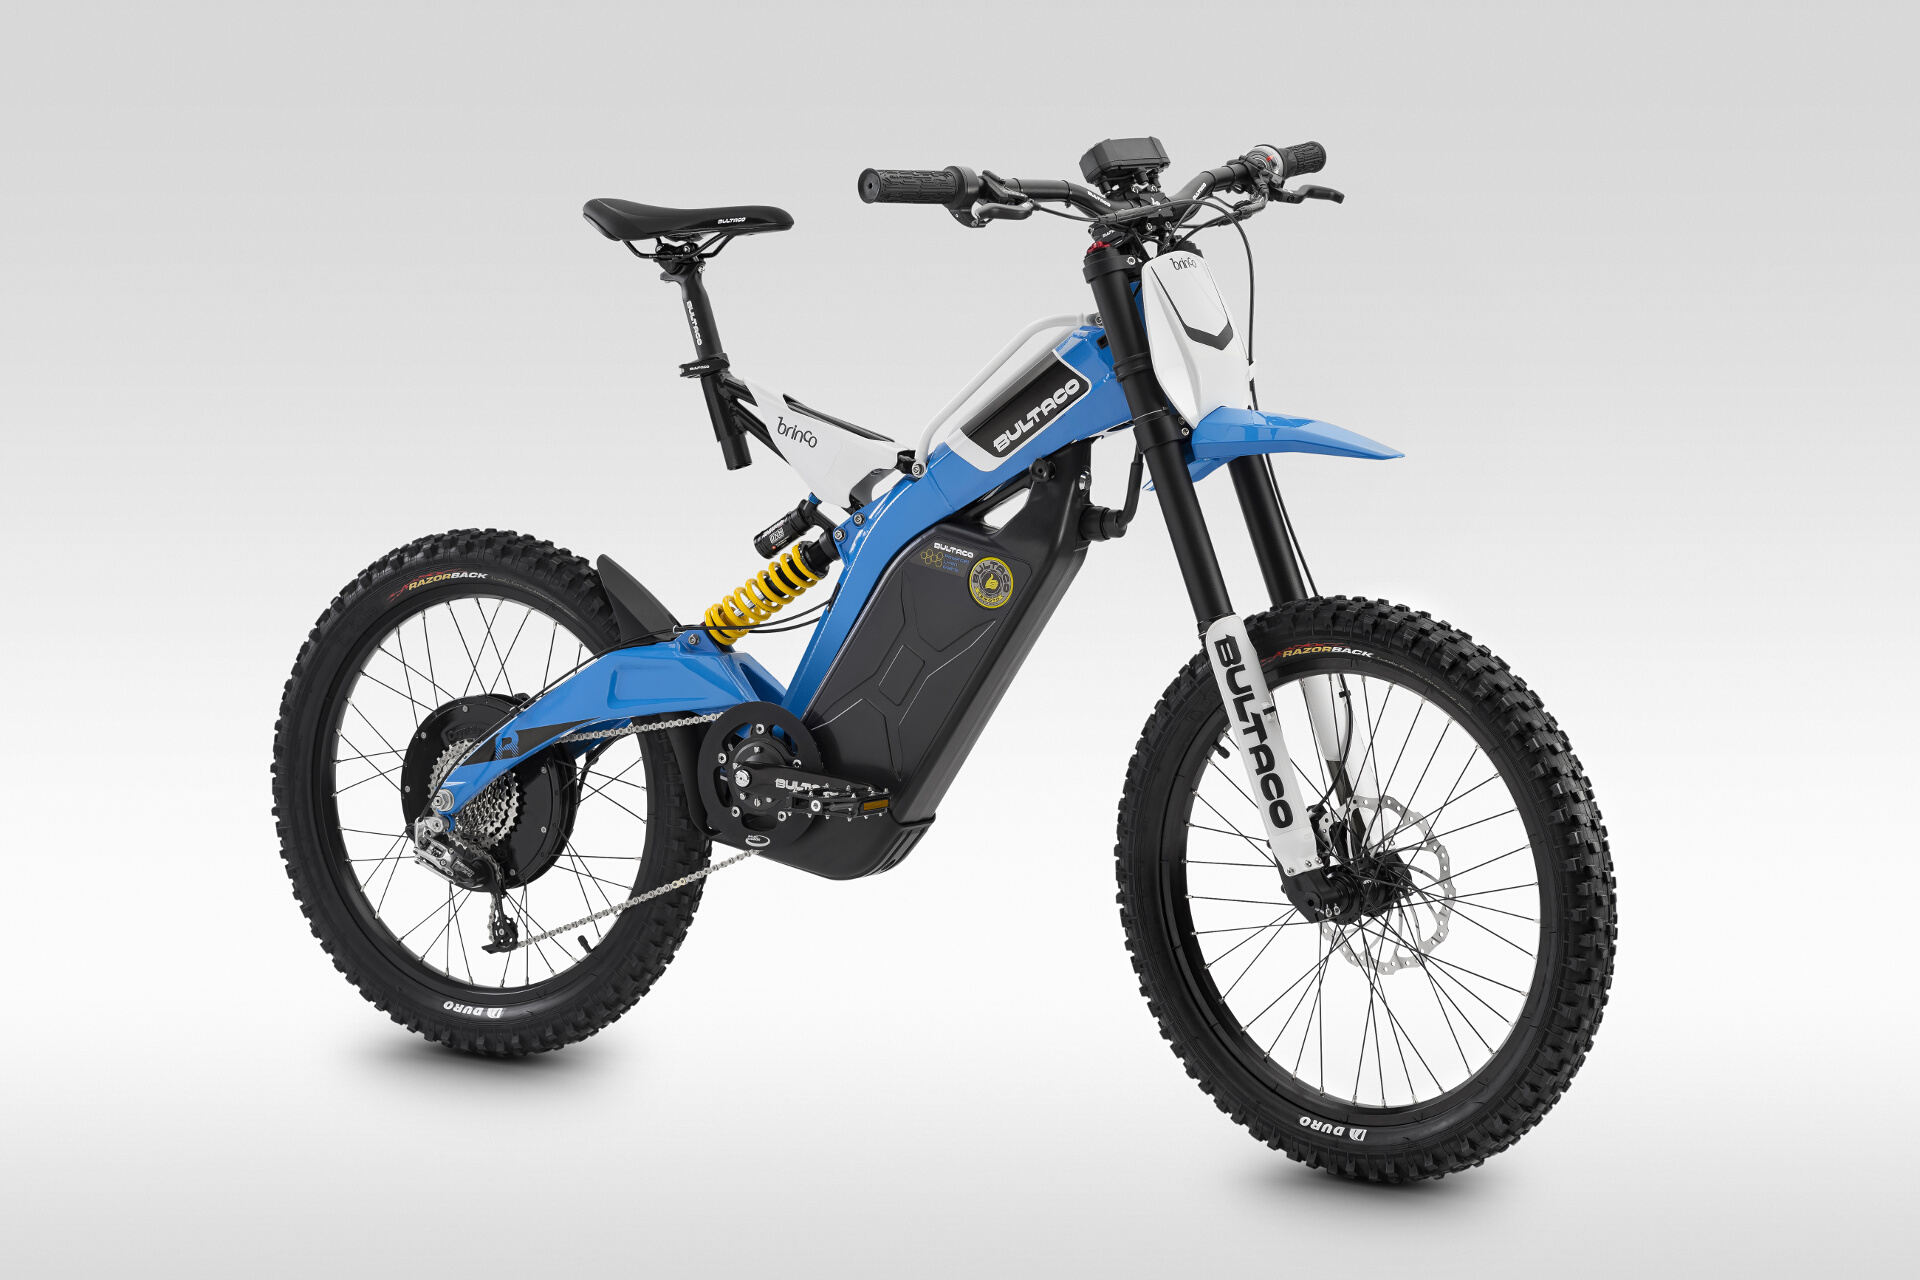 Bultaco Brinco Gallery Electric Motorcycles